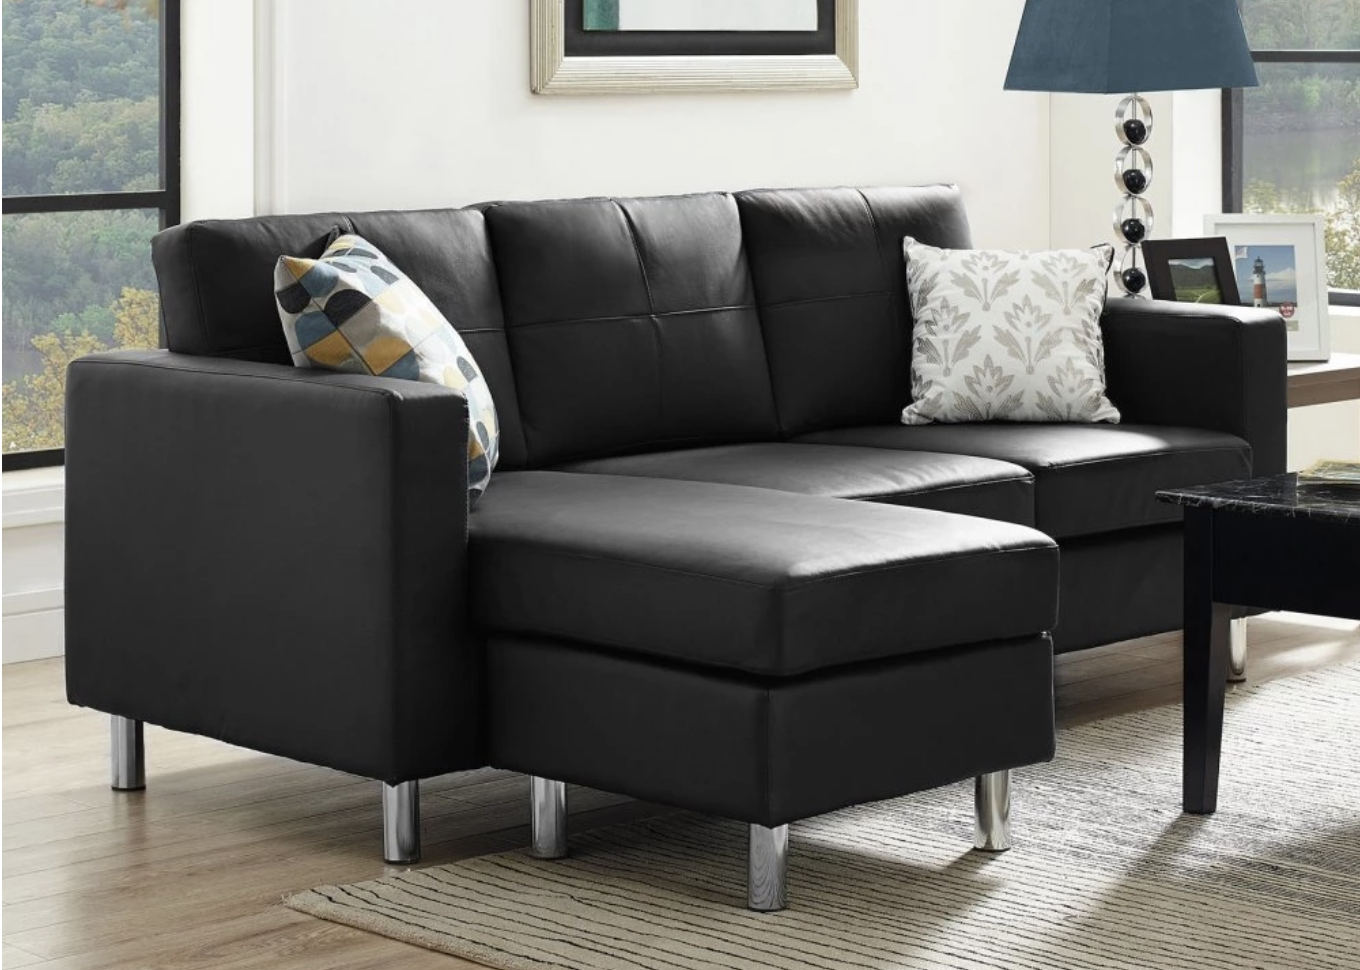 75 Modern Sectional Sofas For Small Spaces (2018) Intended For Sectional Sofas For Small Spaces (View 1 of 15)